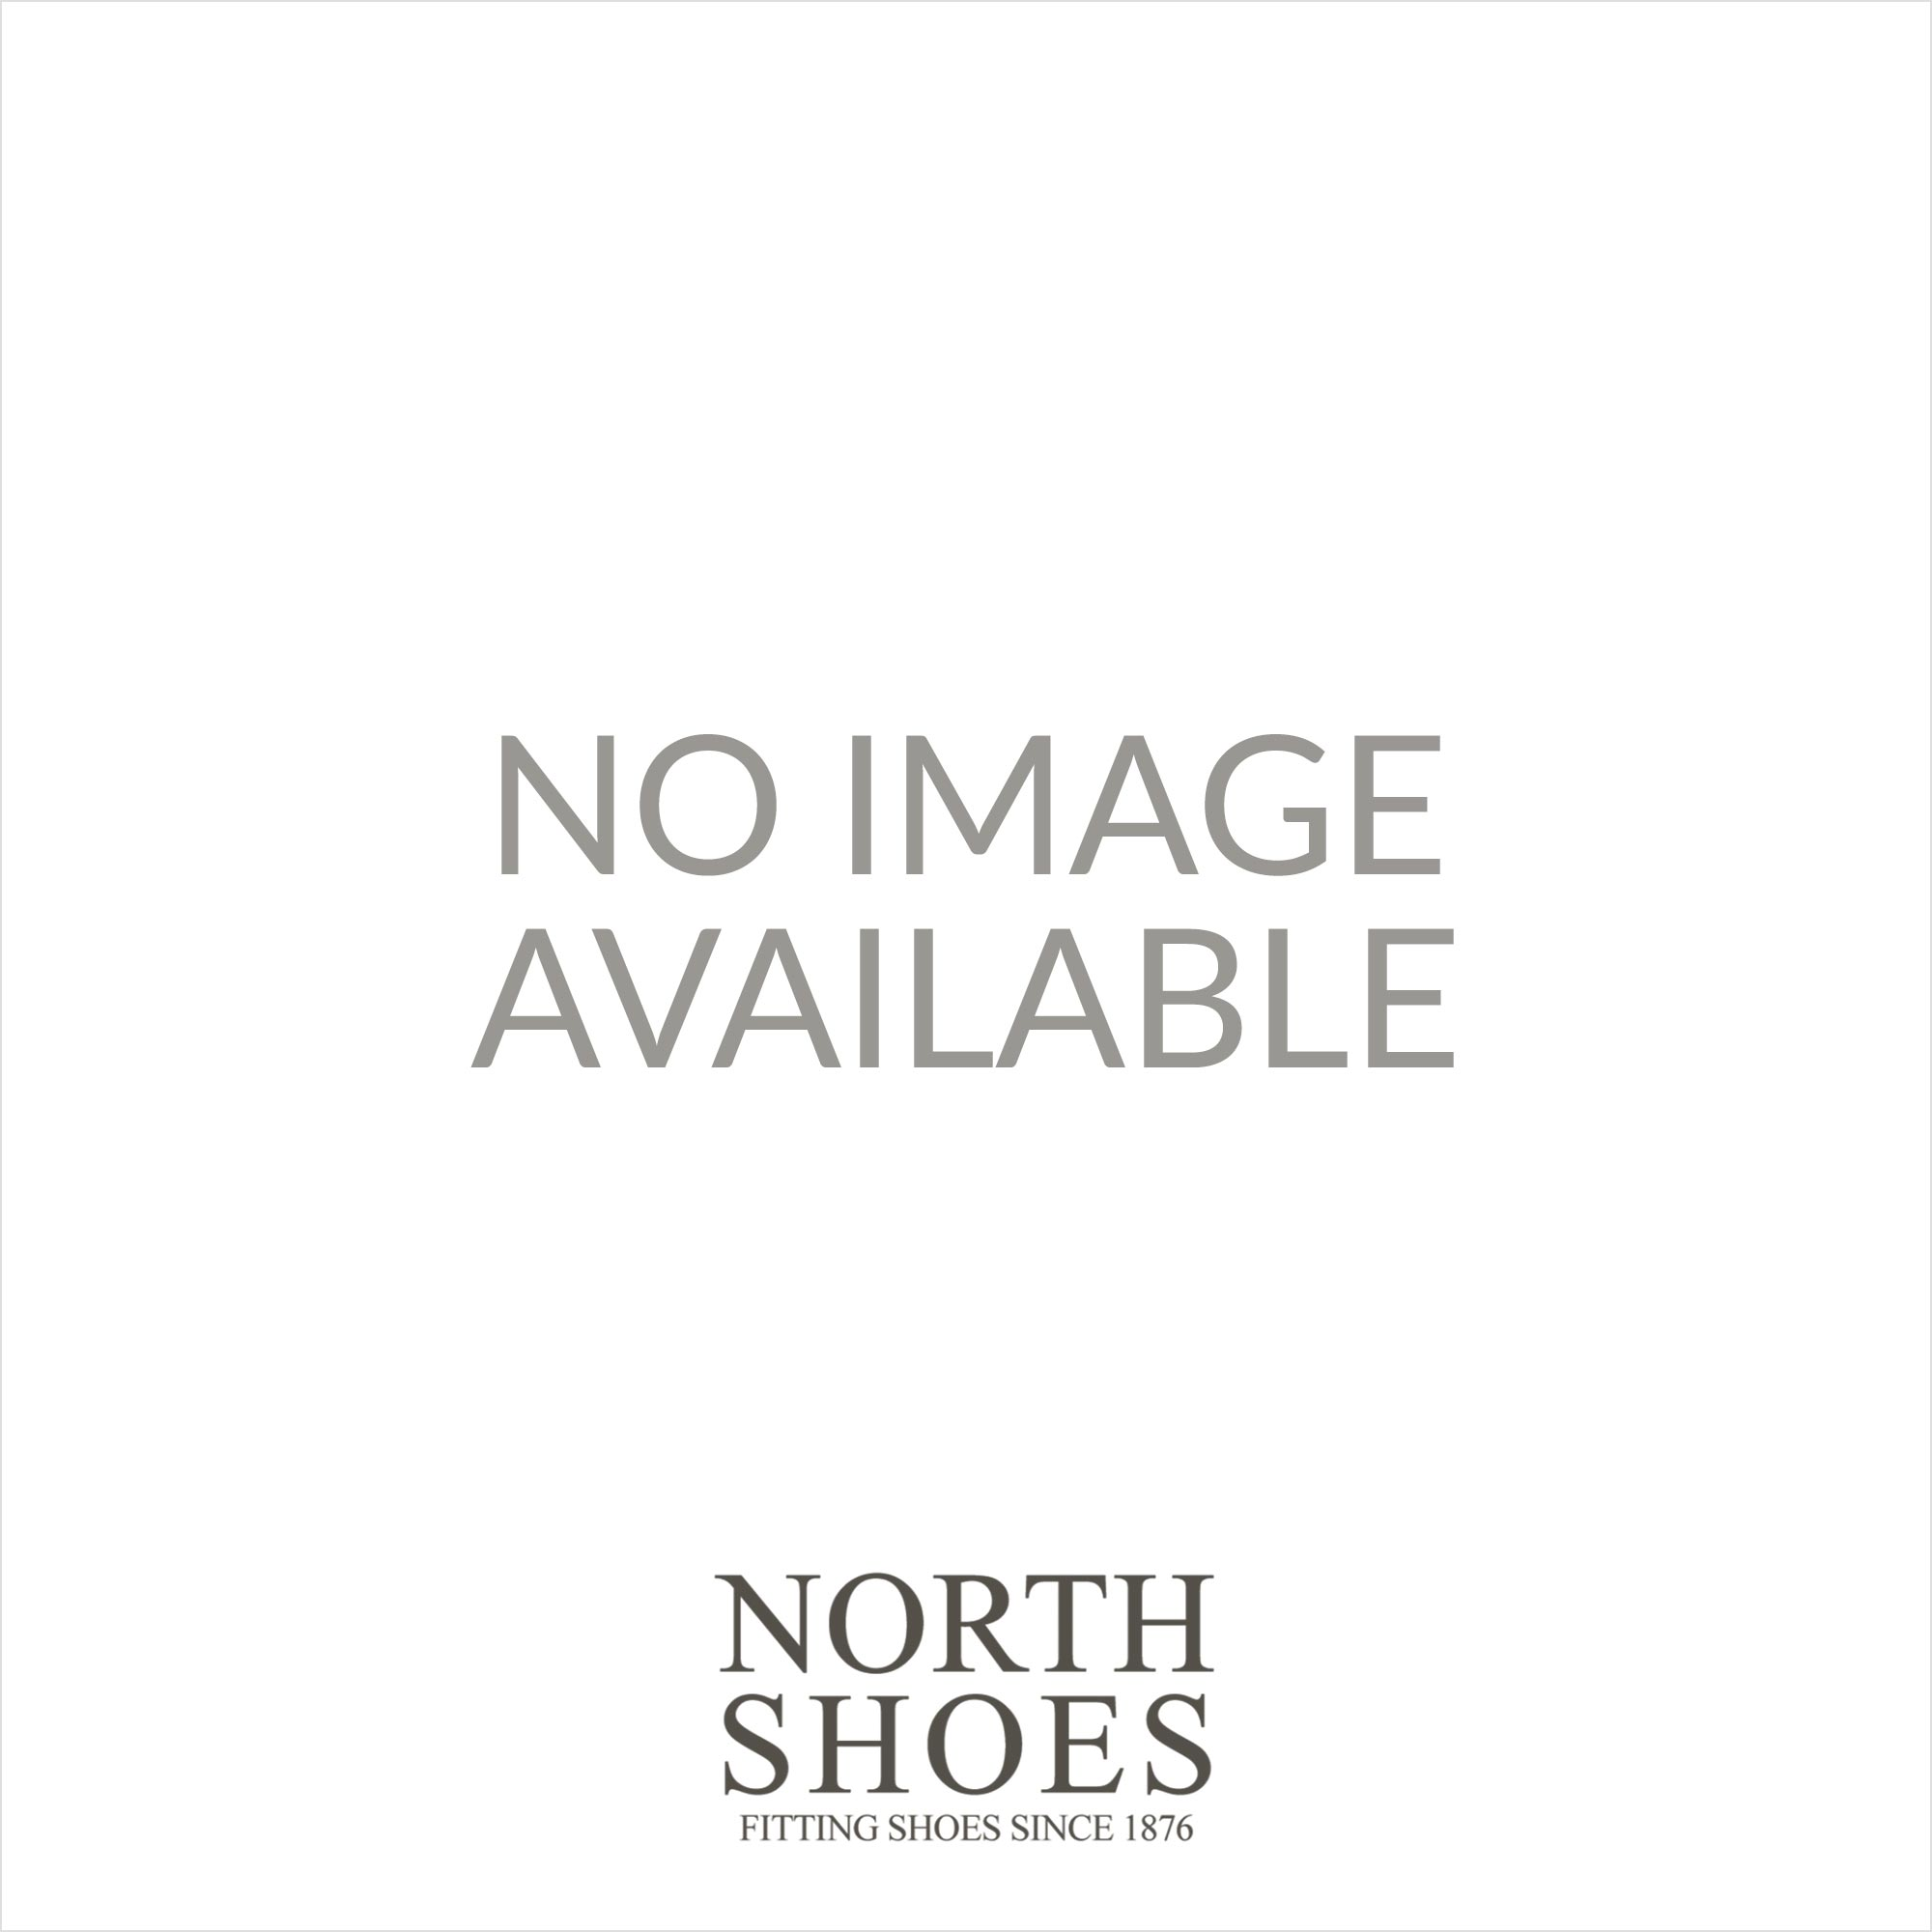 Halo Taupe Snake Textured Leather Womens Toe Post Sandal